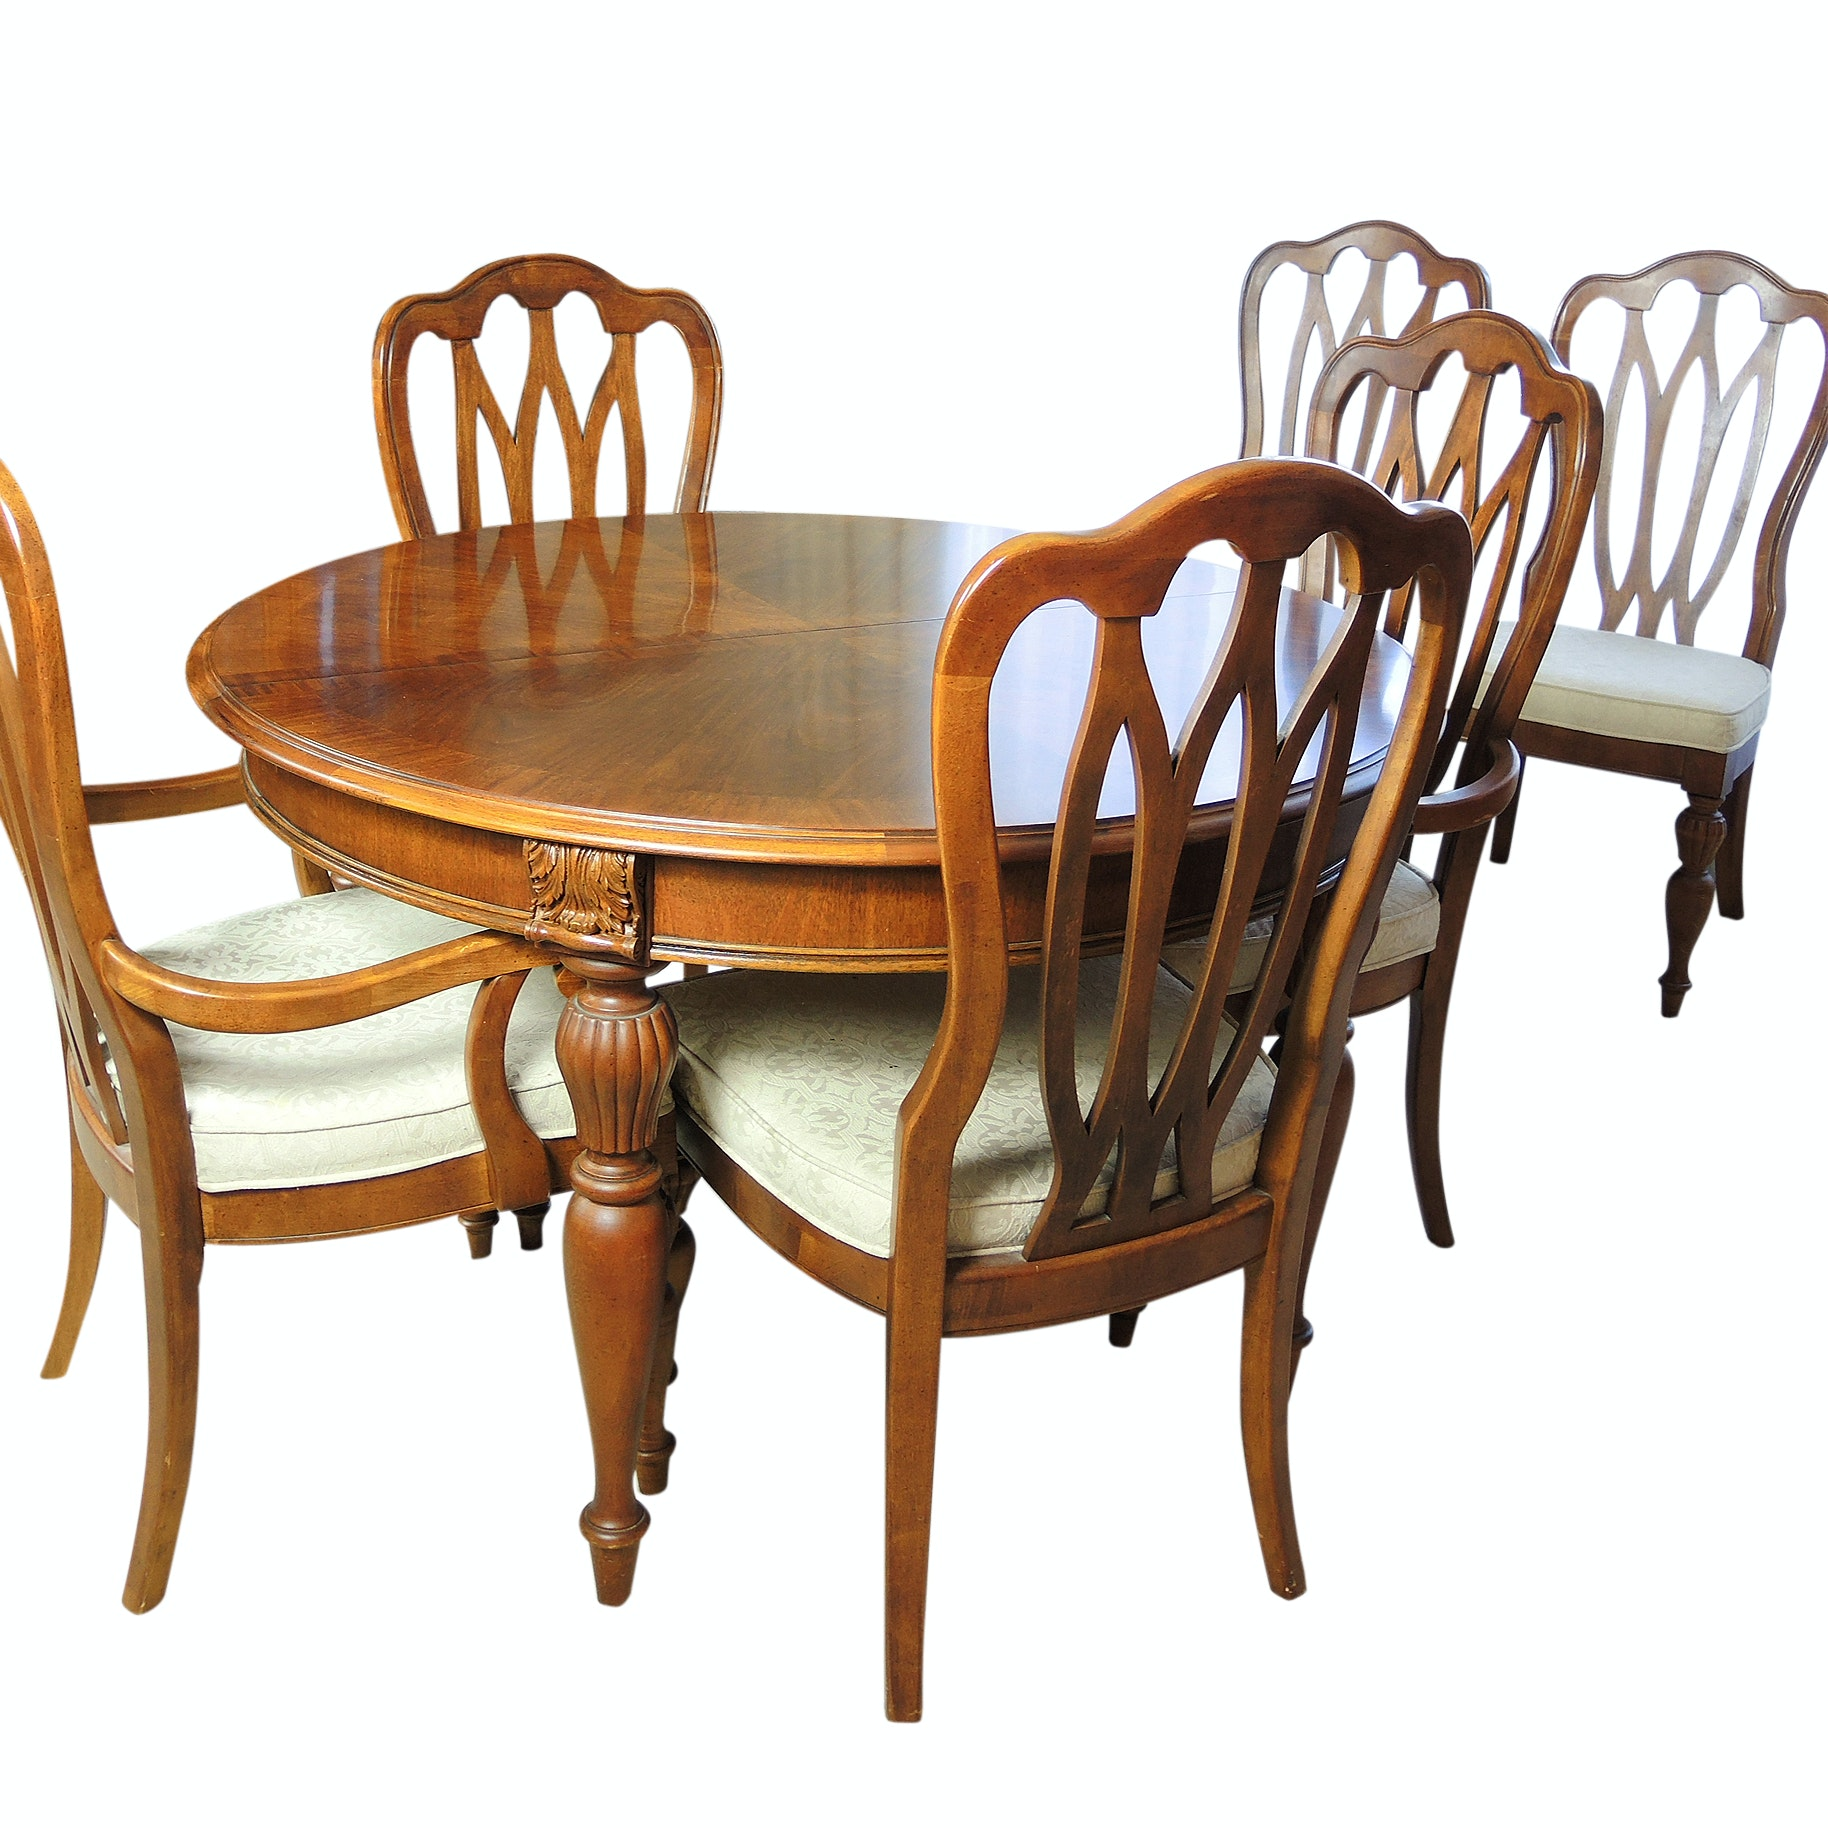 Stanley Furniture Dining Table and Chairs